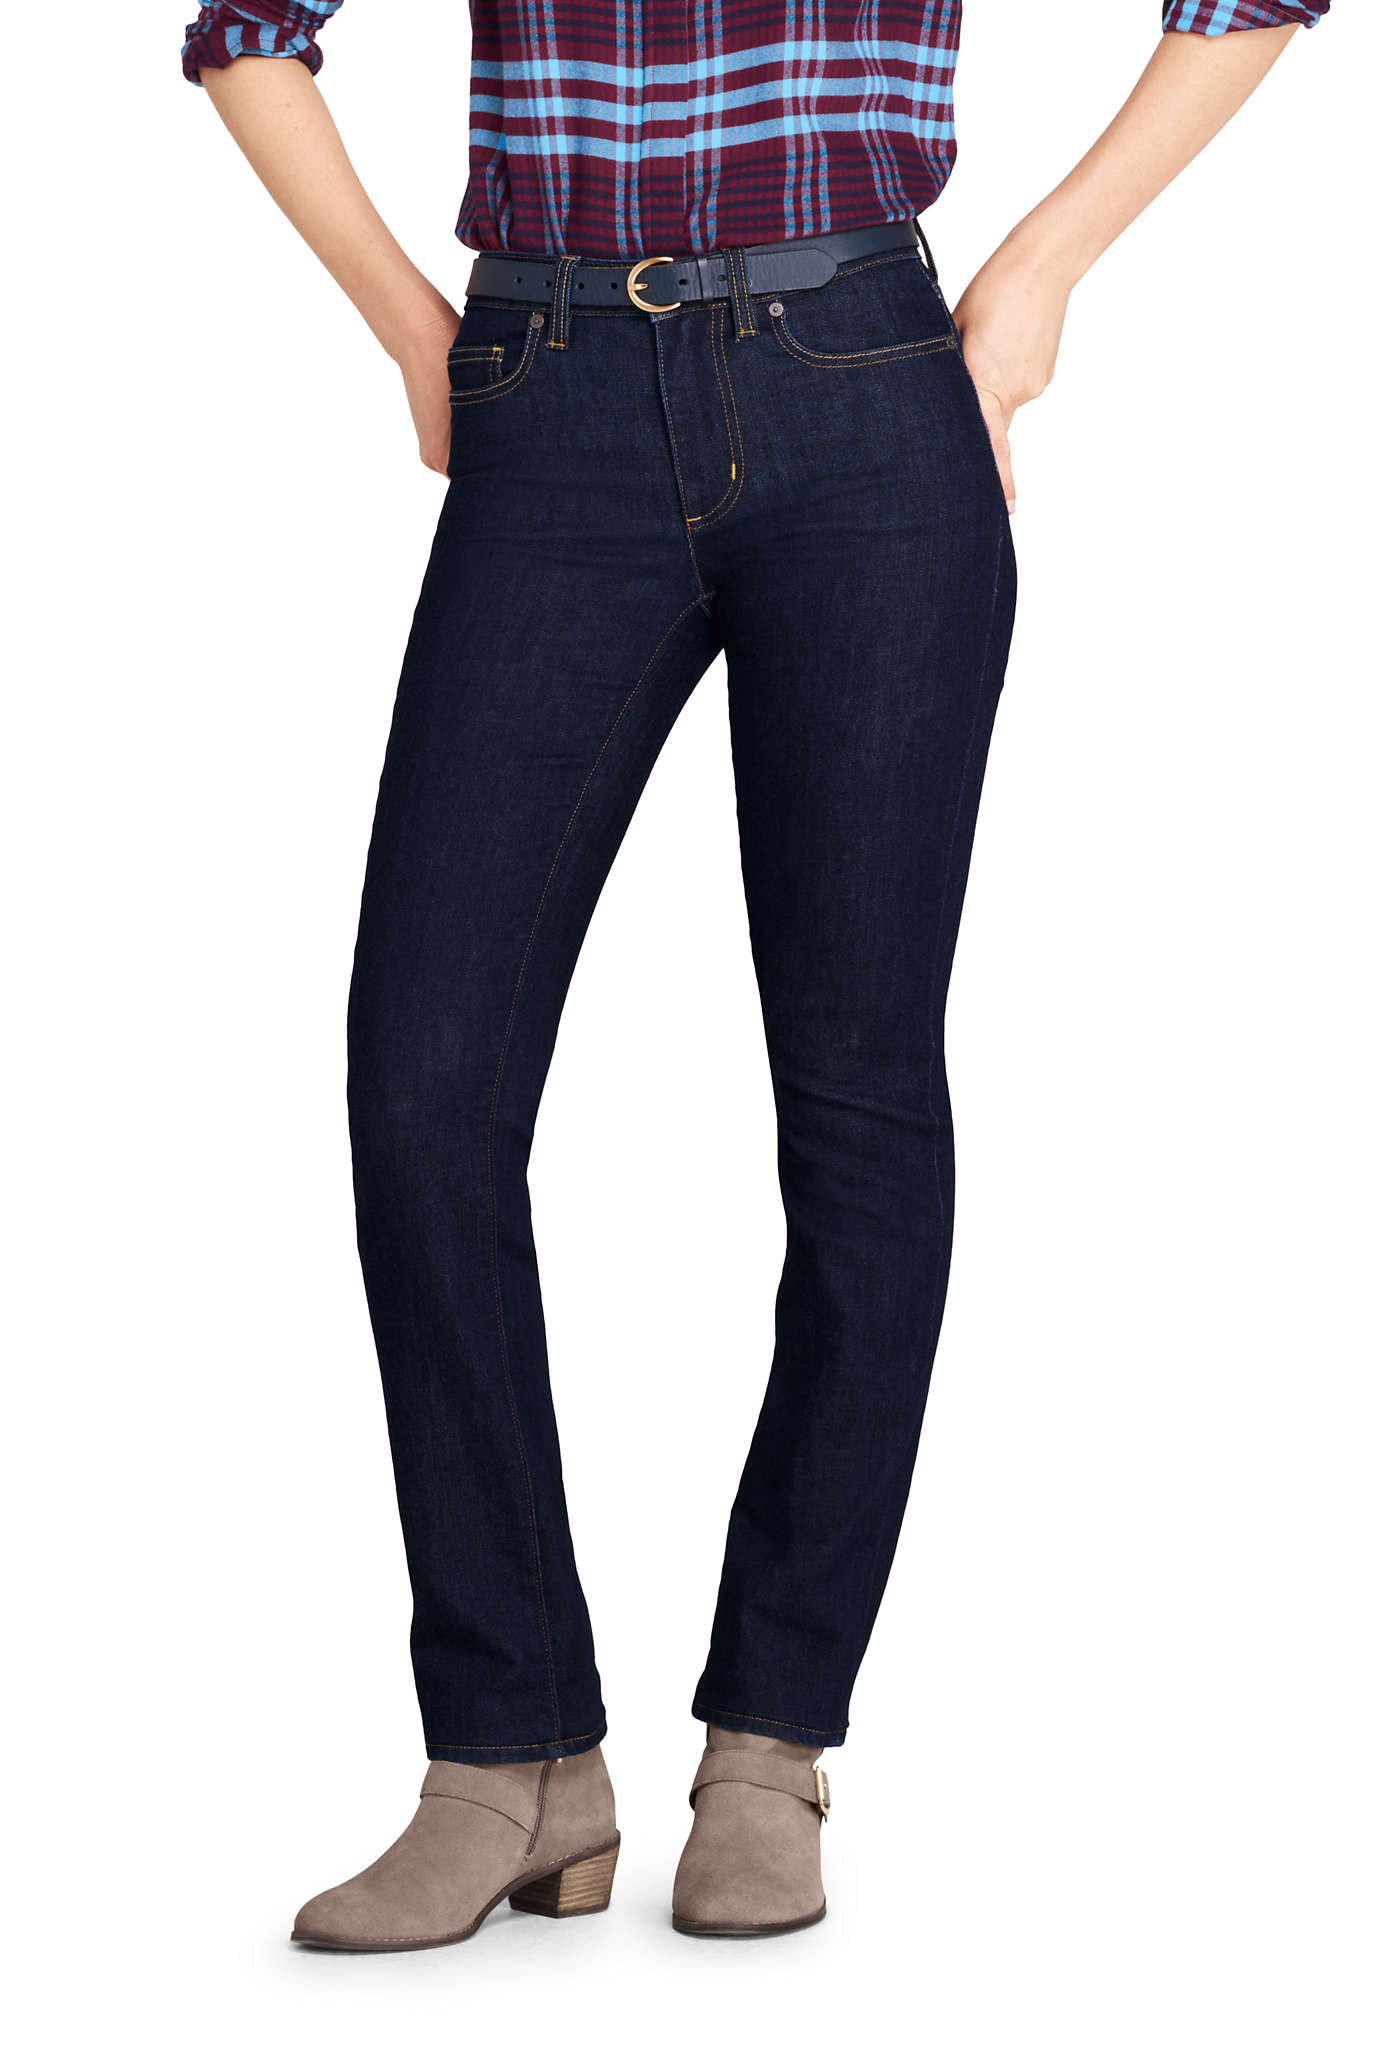 Women's Curvy Elastic Waist High Rise Pull On Skinny Legging Jeans - Blue